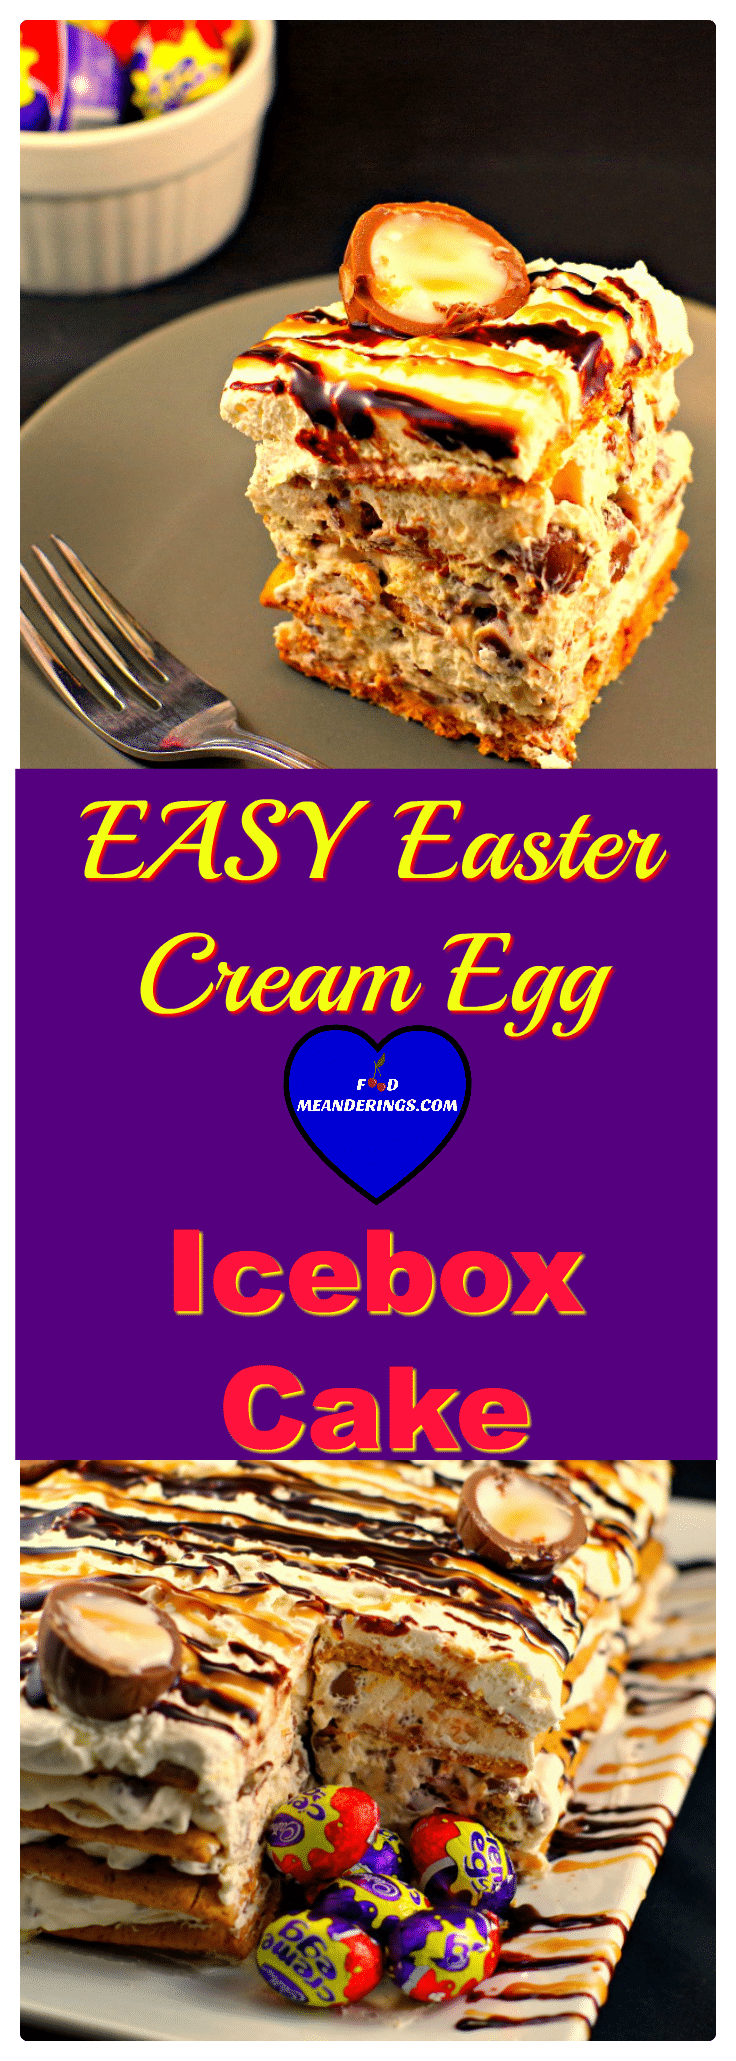 Easy Easter Cream Egg Icebox cake dessert